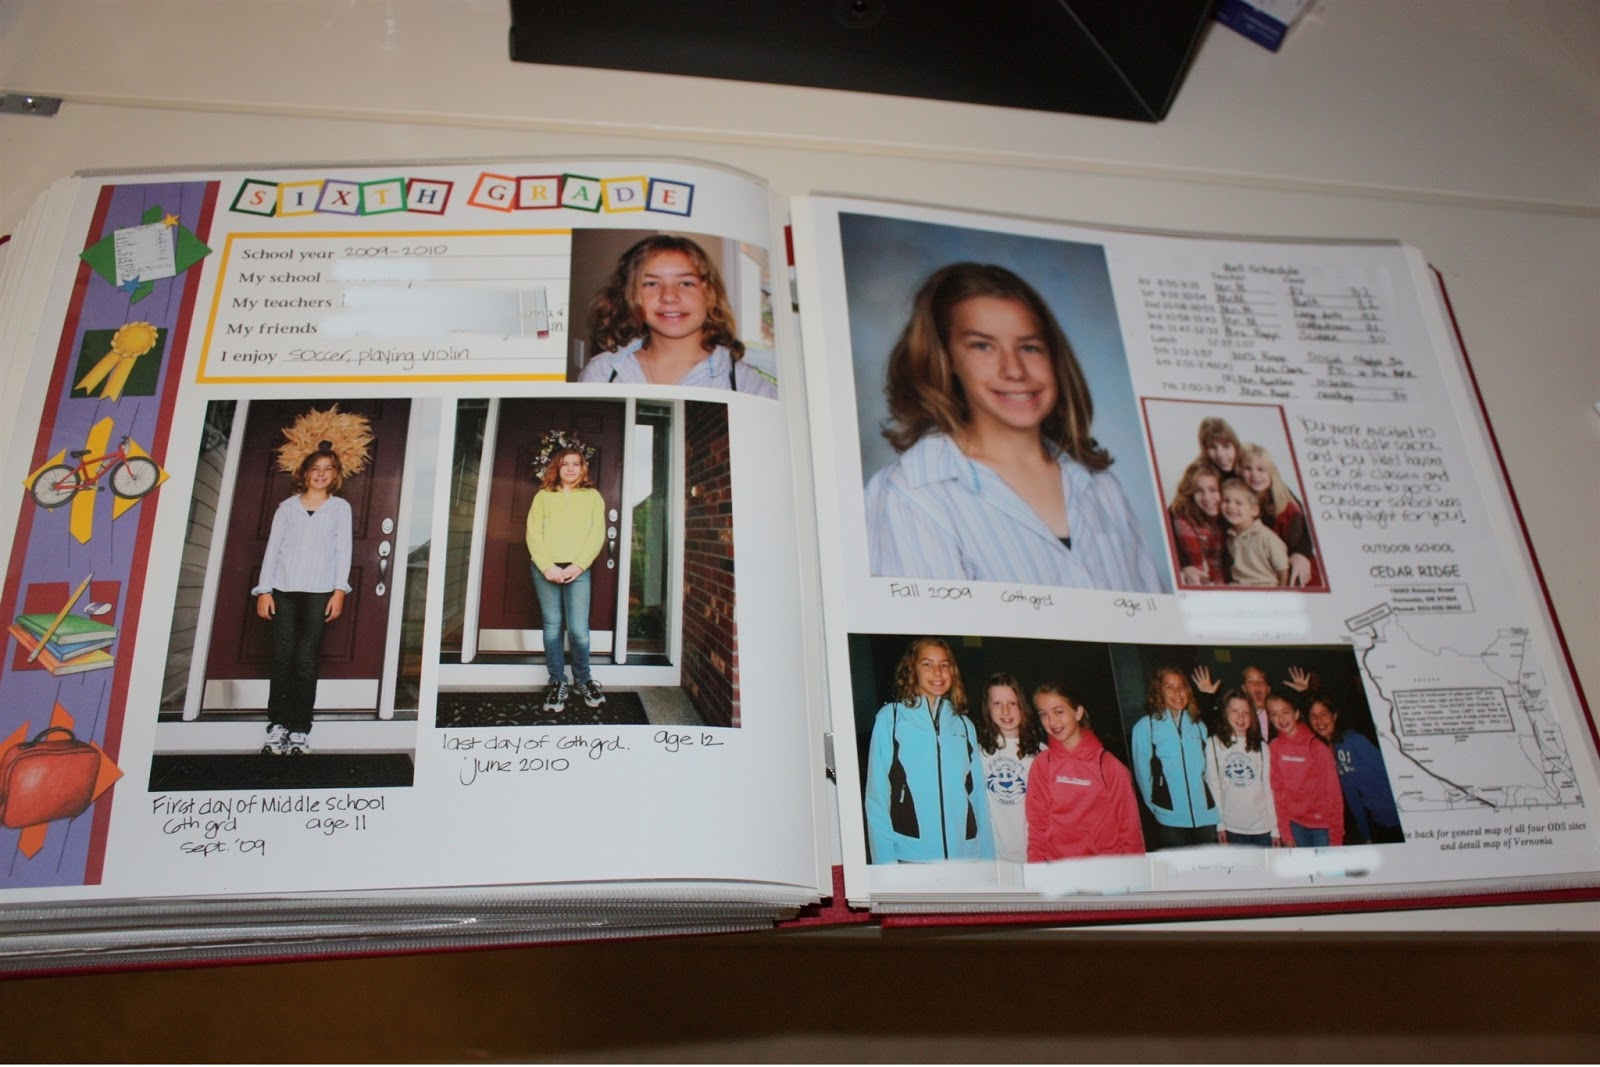 How to scrapbook school years - I Include Clear Pocket Pages For Brochures And Memorabilia Or Artwork I Keep A File Folder Handy For Each Child And During The School Year Will